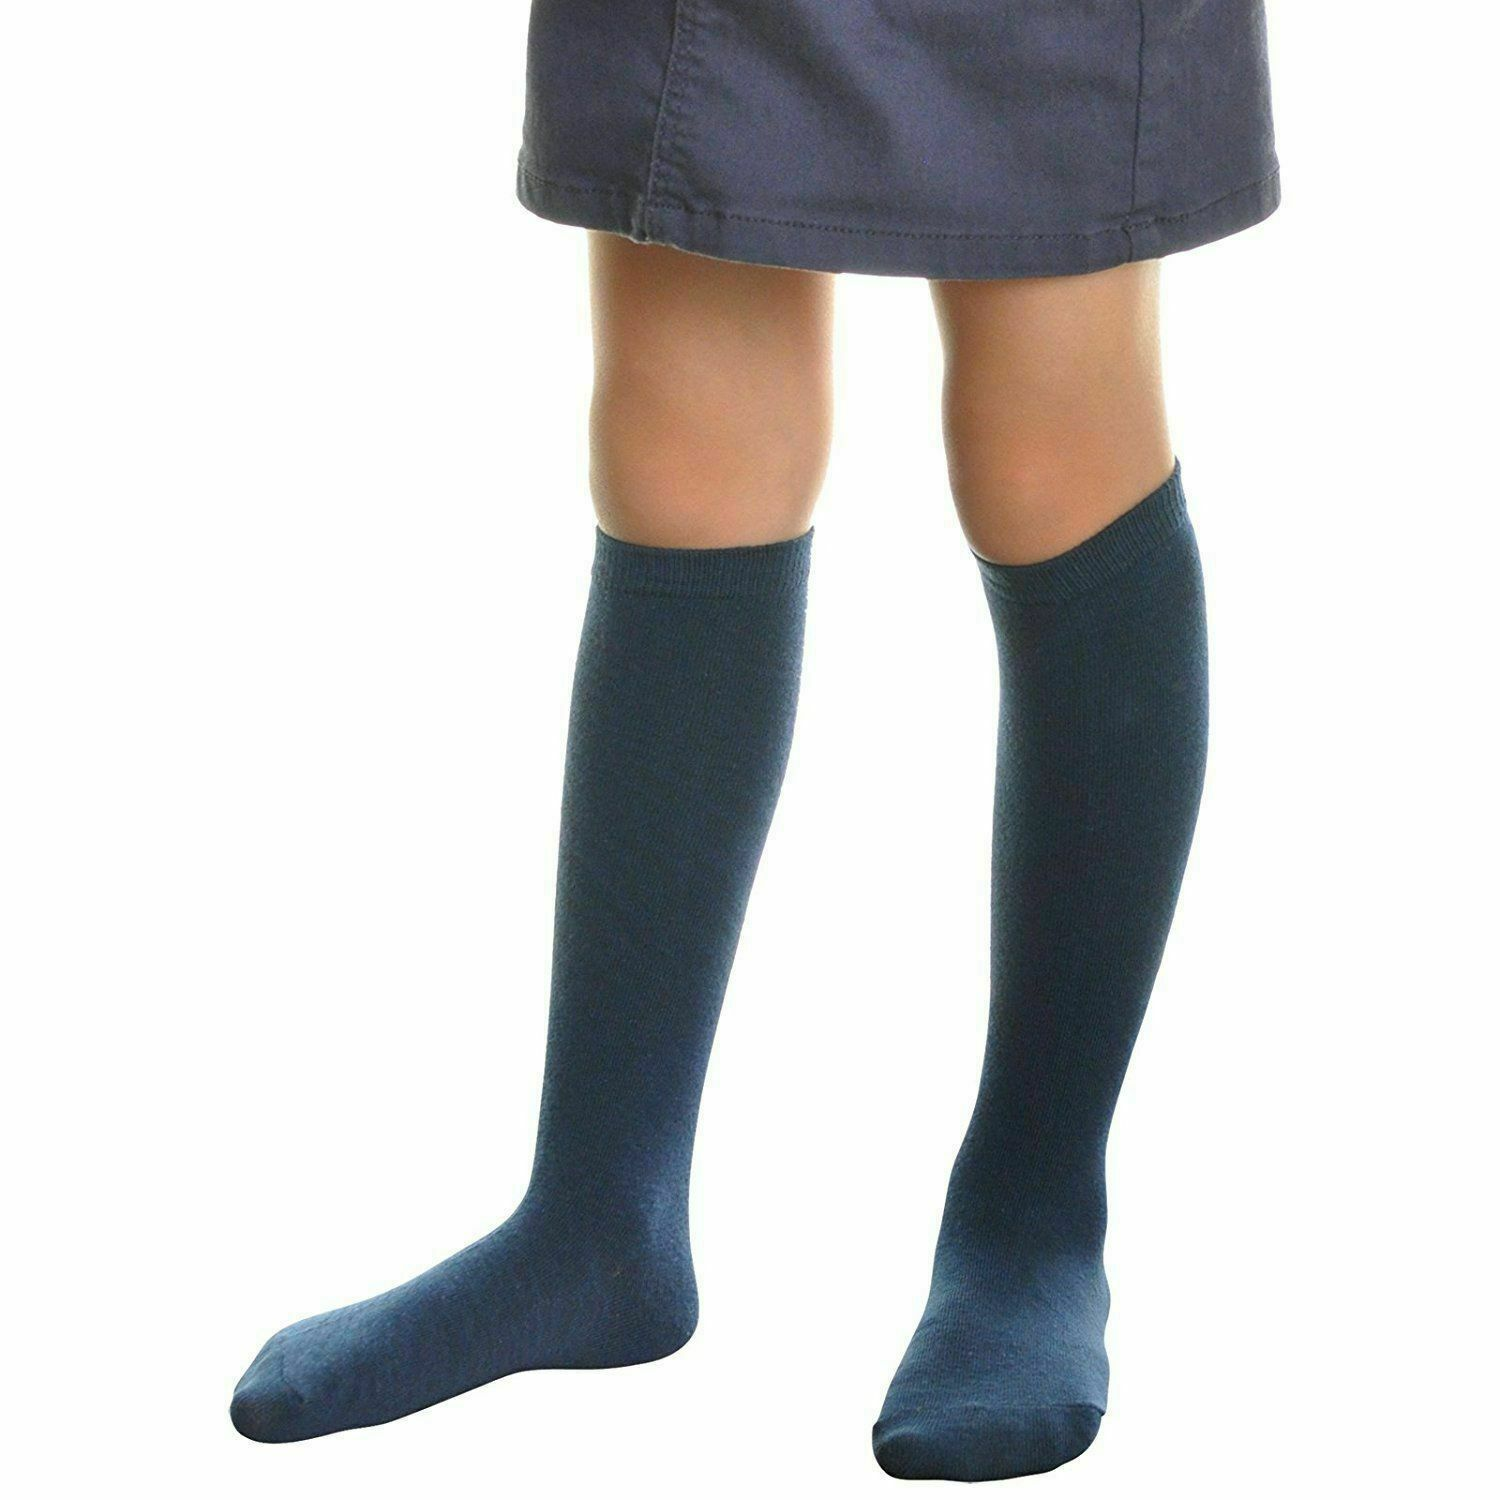 11 Pair Girls Premium Cotton Solid Navy Kids Knee High Socks for Youth Medium